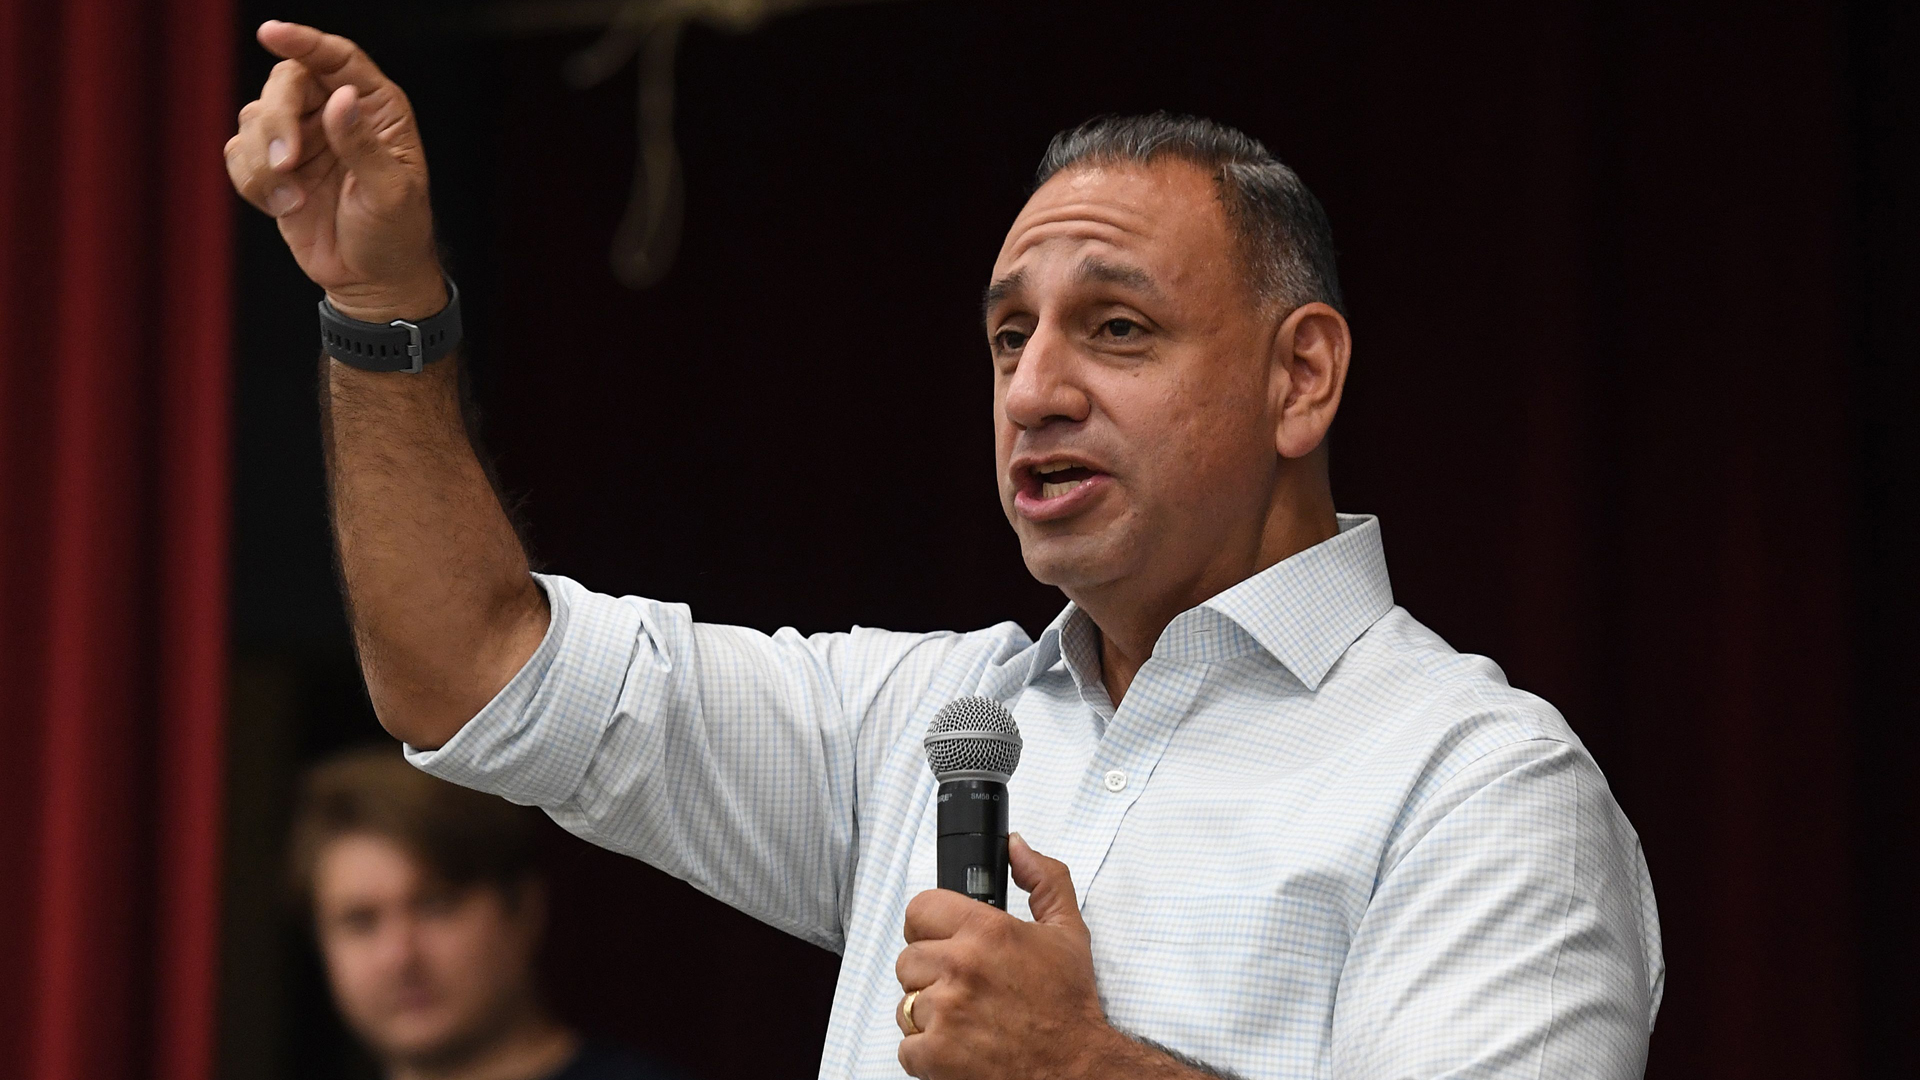 Gil Cisneros campaign in Buena Park to represent California's 39th congressional district during the 2018 mid-term elections on Nov. 5, 2018. (Credit: MARK RALSTON/AFP/Getty Images)